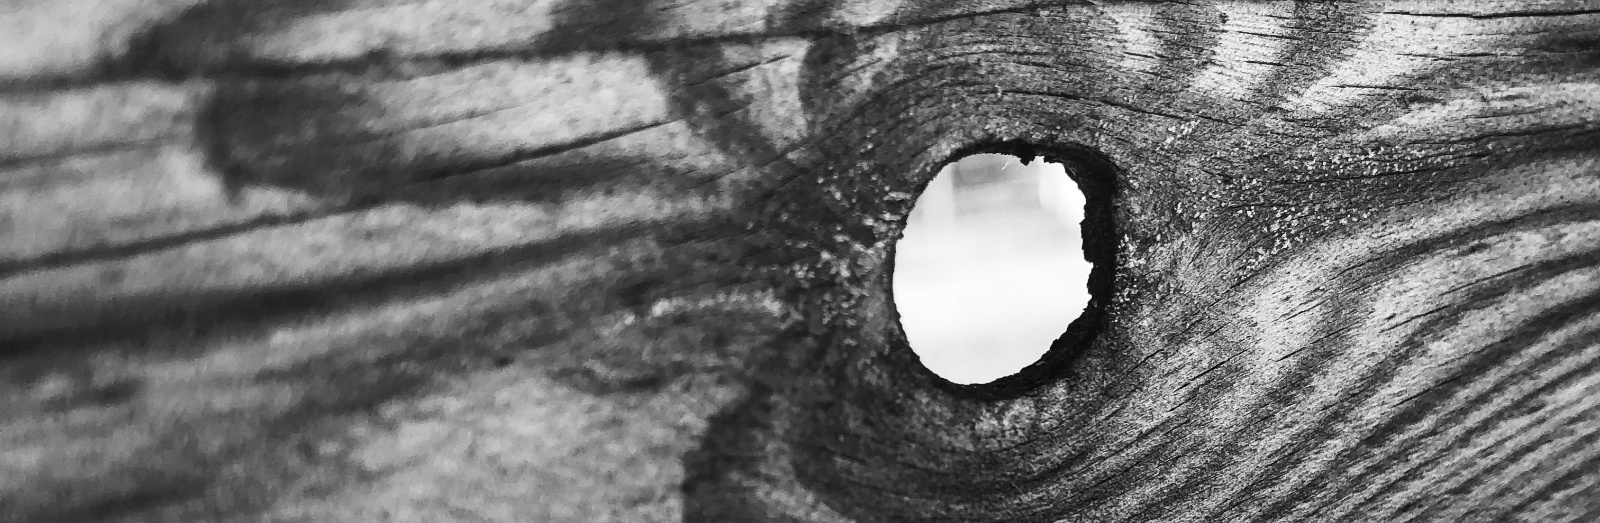 A black and white image of a knothole in pine woodgrain